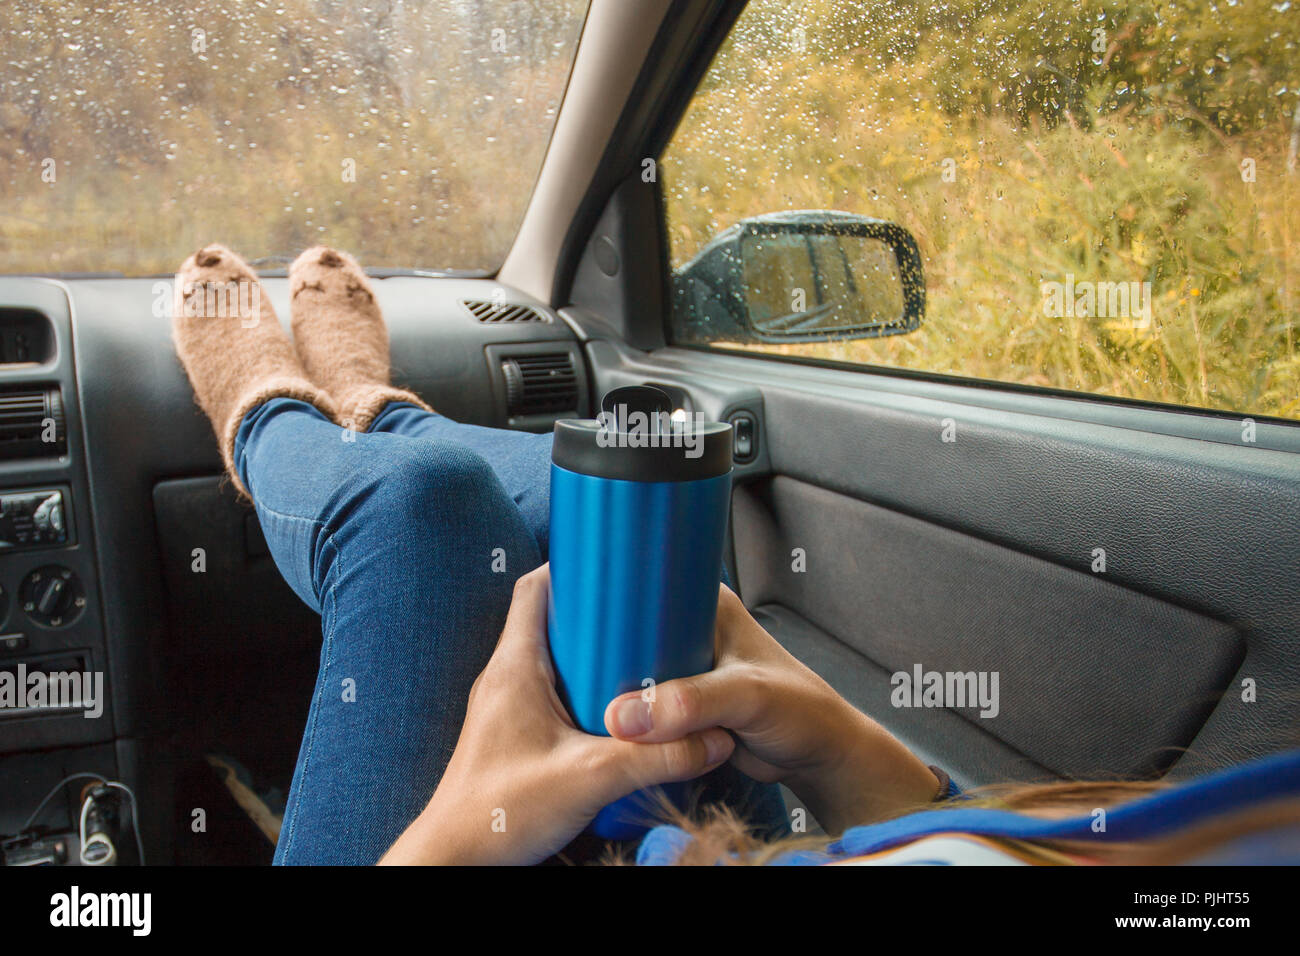 Feet in warm cute socks on car dashboard. Travel, road trip and autumn fall concept. Focus on thermos bottle cup with hot drink in female hands. Autum - Stock Image